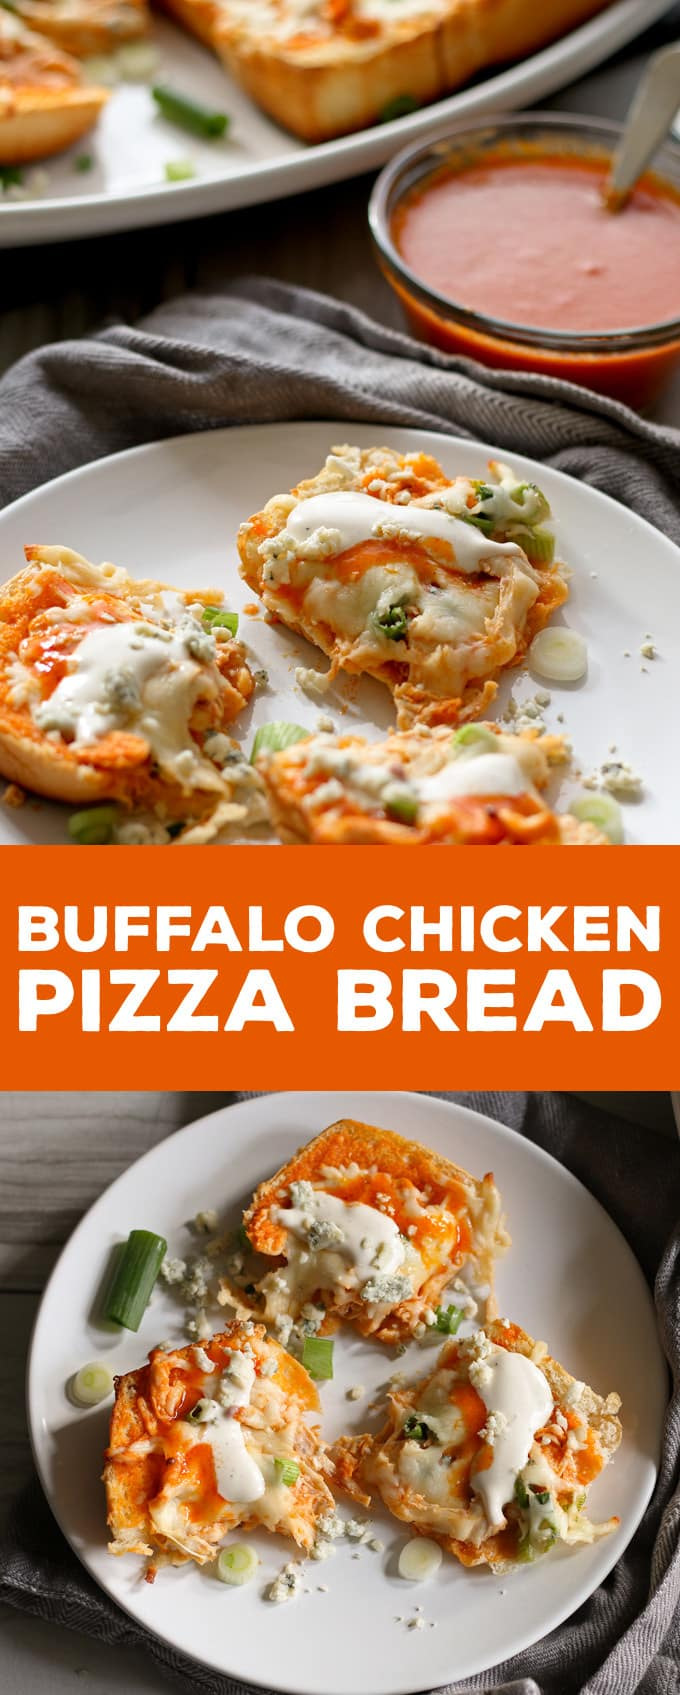 This buffalo chicken pizza bread recipe is going to be a hit at your next party! It's made with KING'S HAWAIIAN® Sweet Bread Rolls for easy eating and is the perfect appetizer or lunch! | honeyandbirch.com